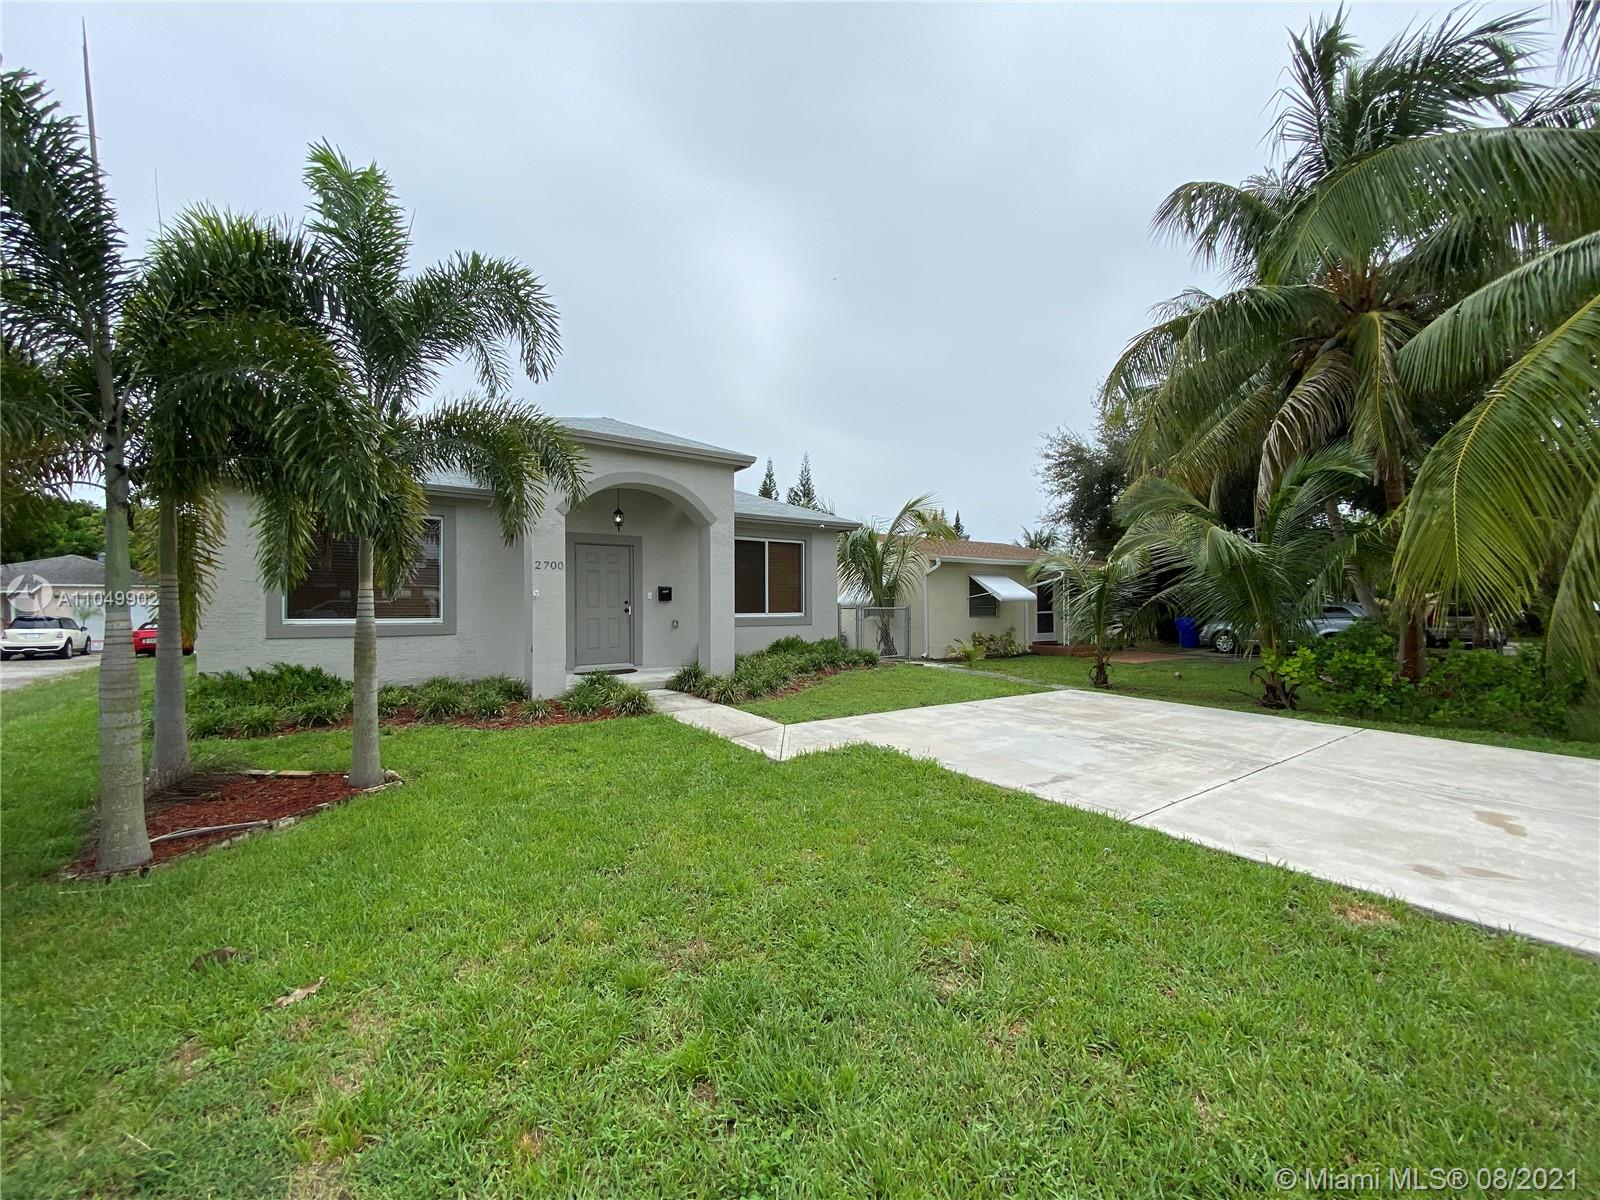 Hollywood Little Ranches, 2700 Fillmore St, Hollywood, Florida 33020